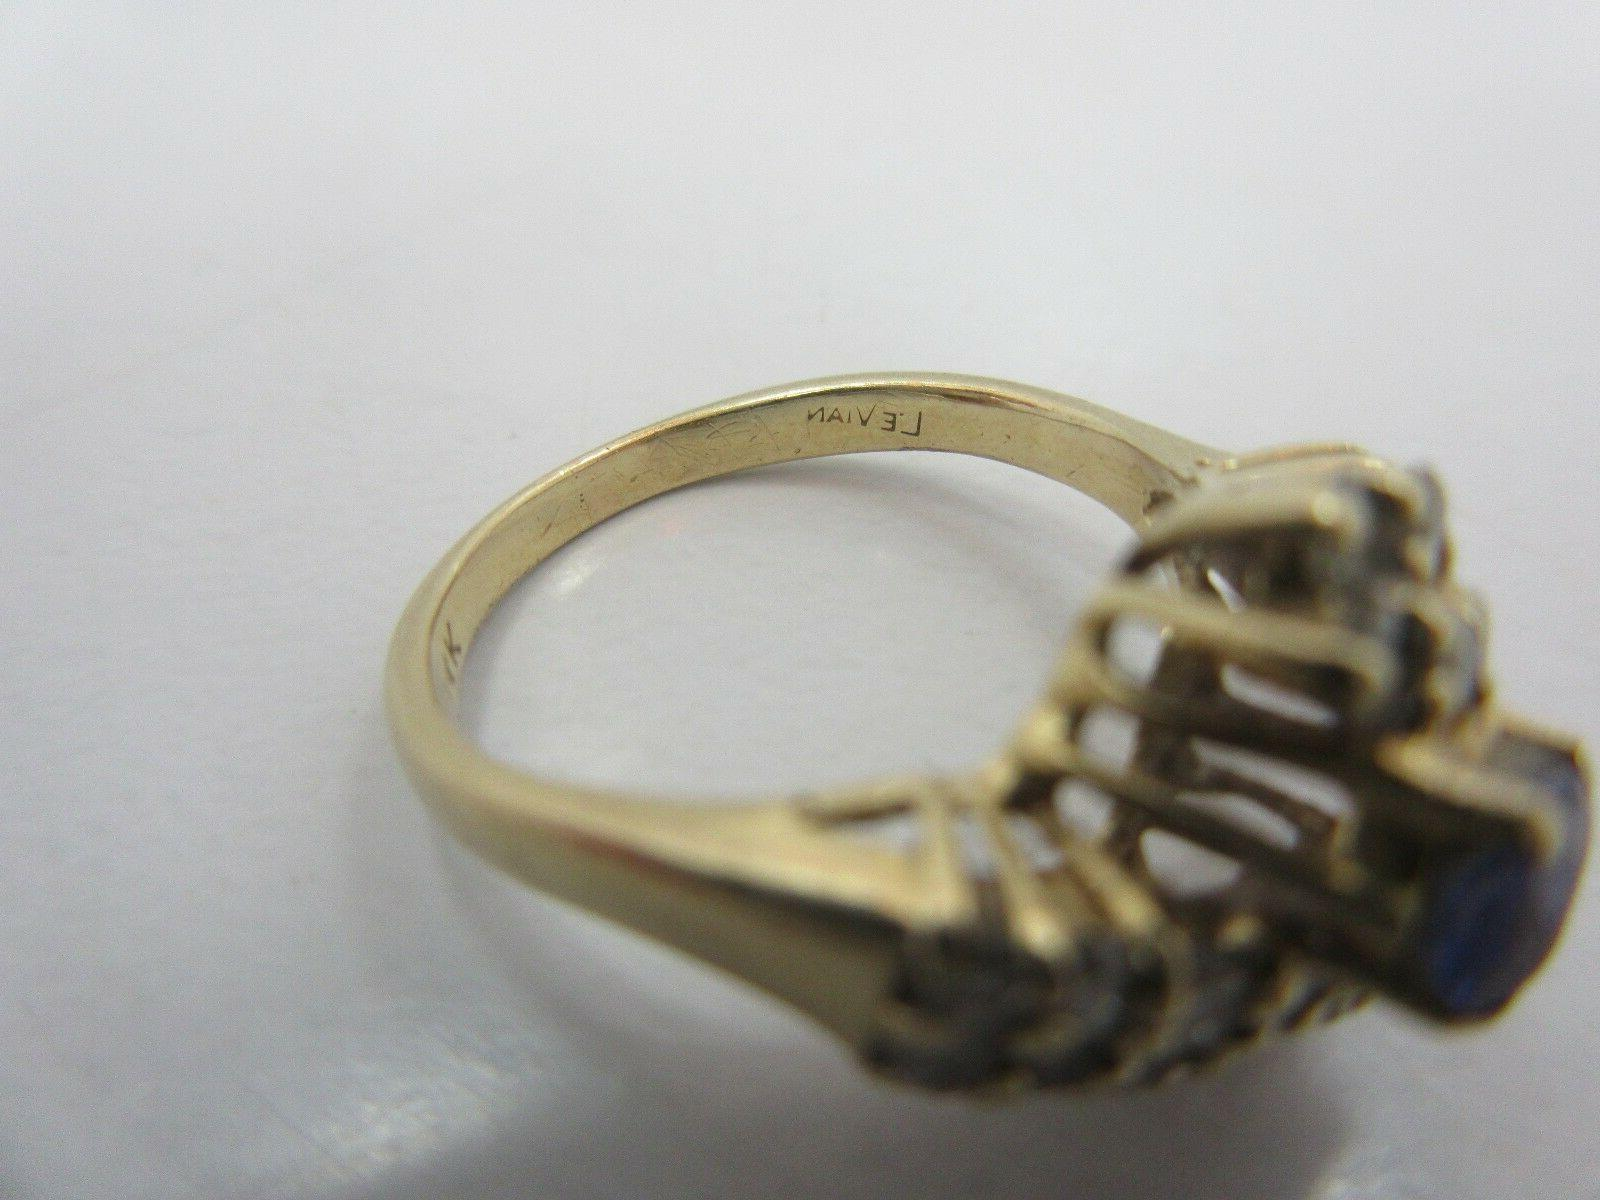 LeVian OVAL RING size 5.5